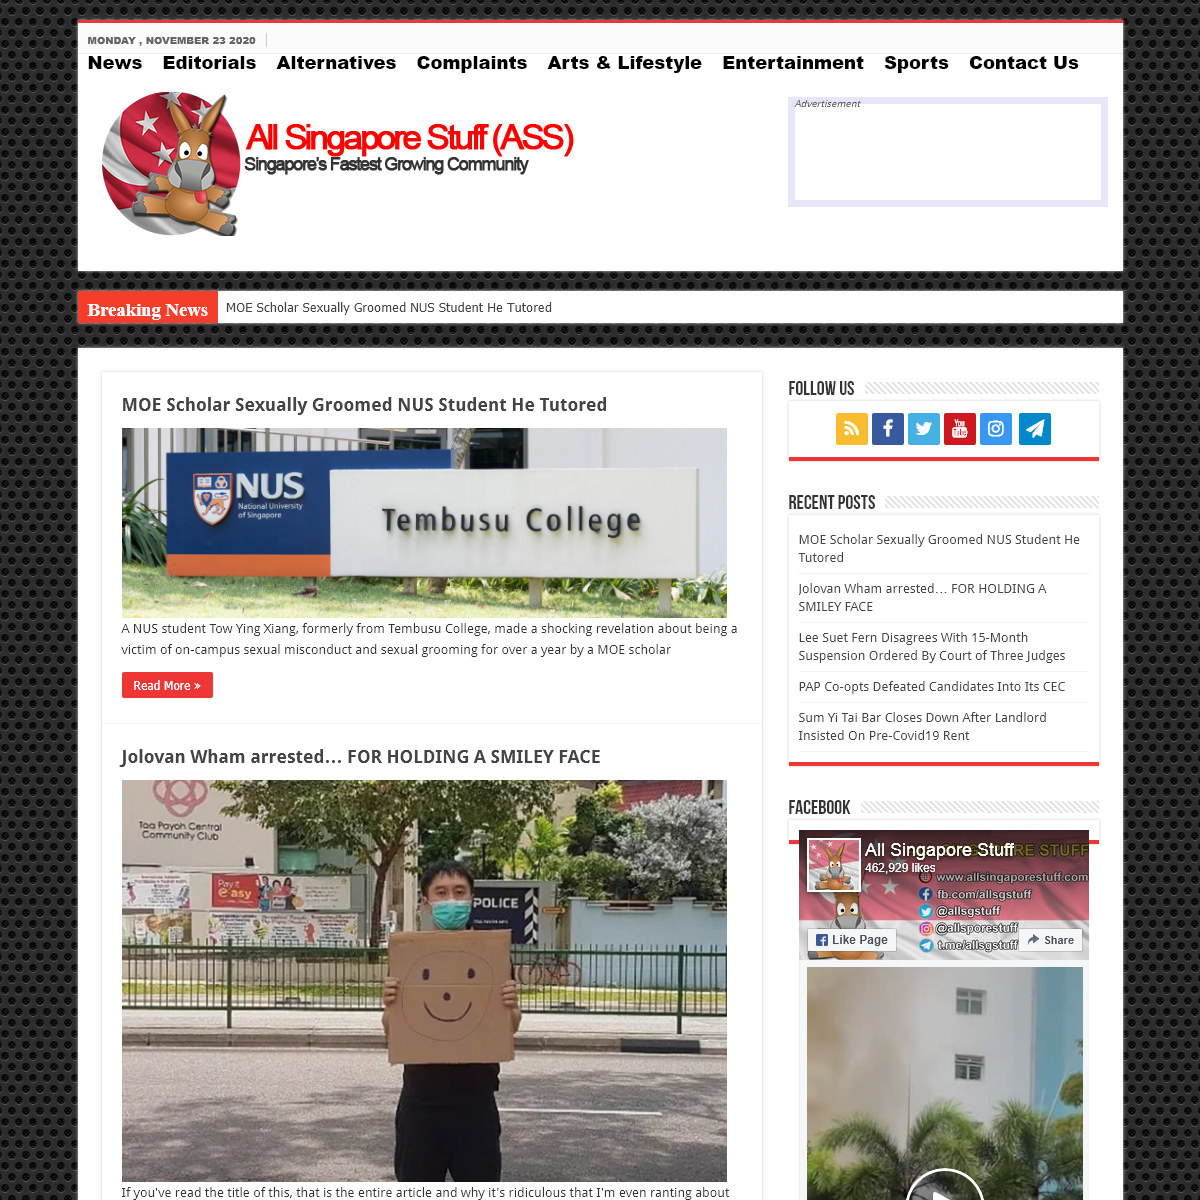 All Singapore Stuff – Real Singapore News – From Tuas to Changi, All Singapore Stuff brings you Real Singapore News!